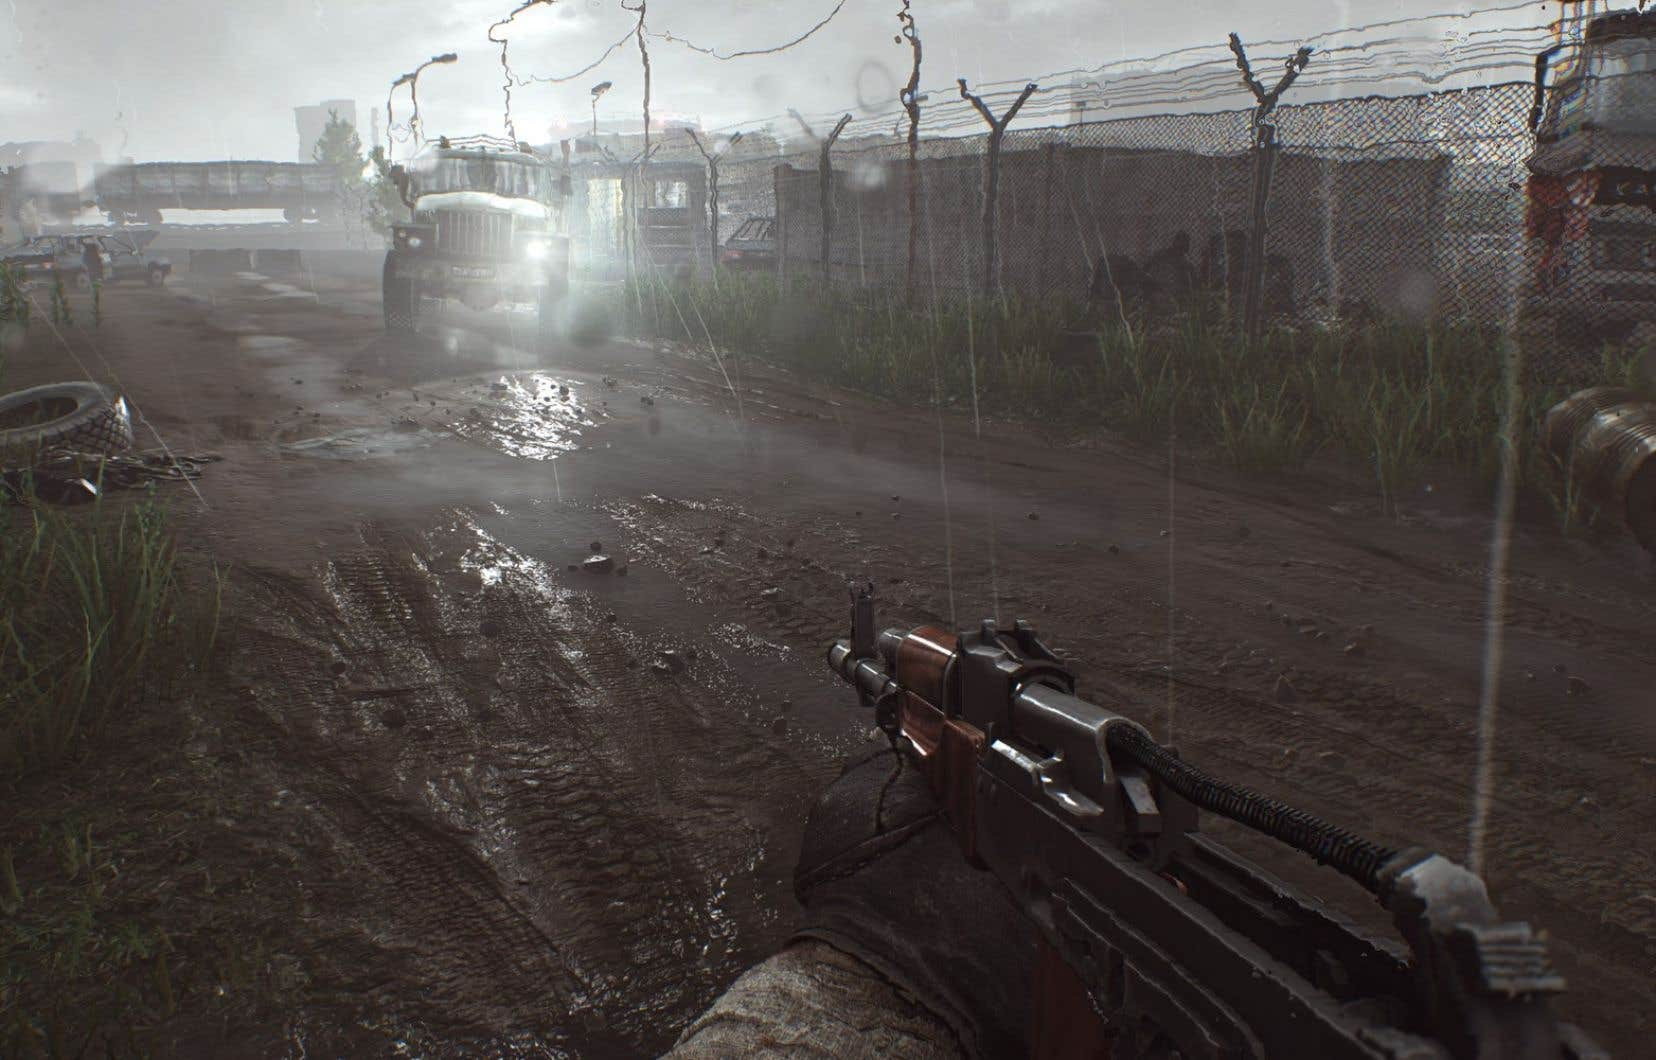 Jeu «Escape From Tarkov» du studio russe Battlestate Games